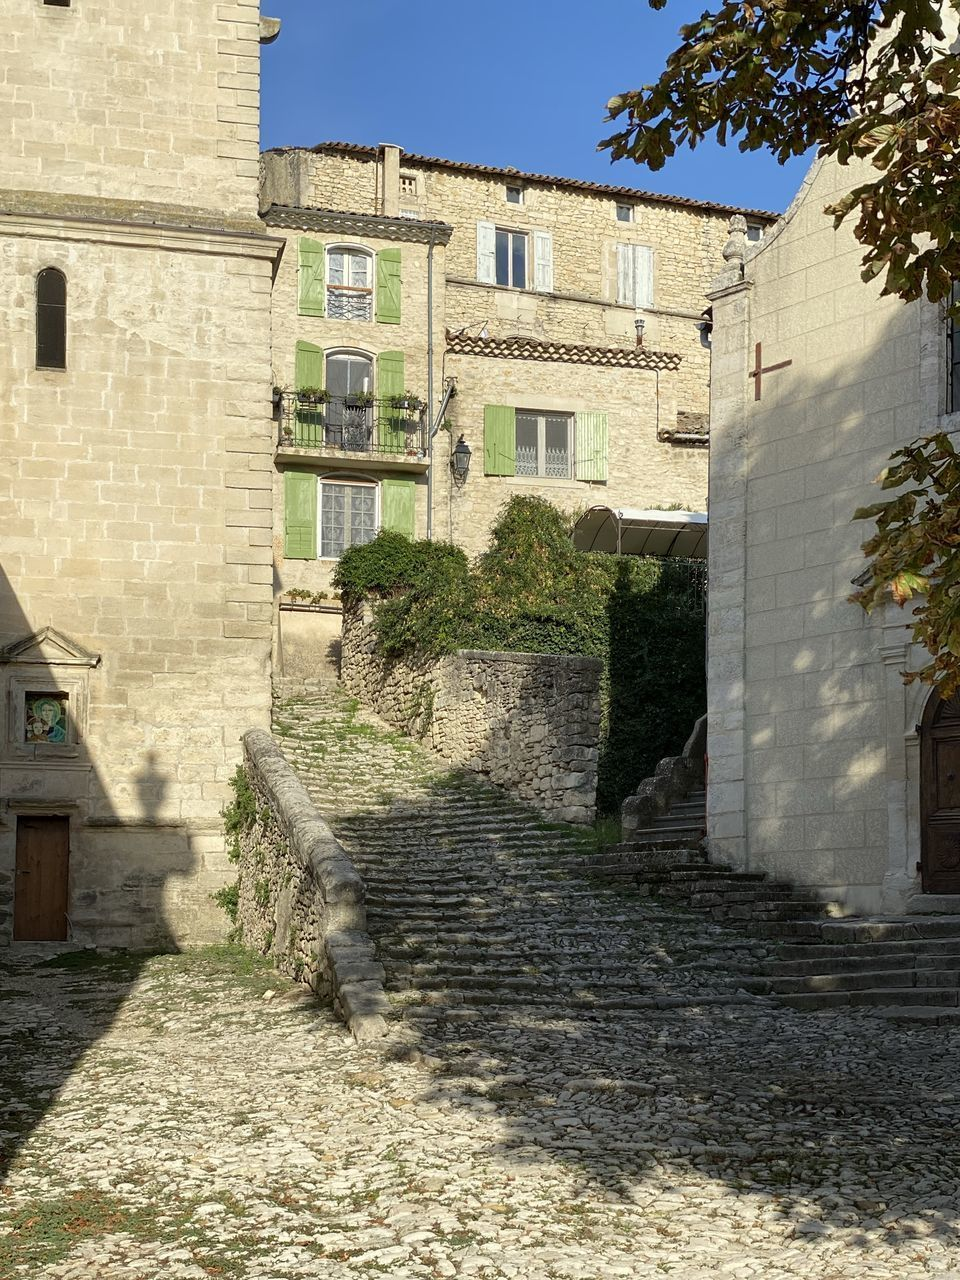 architecture, built structure, building exterior, building, sunlight, nature, day, no people, shadow, staircase, residential district, plant, wall, outdoors, tree, the way forward, city, direction, house, history, stone wall